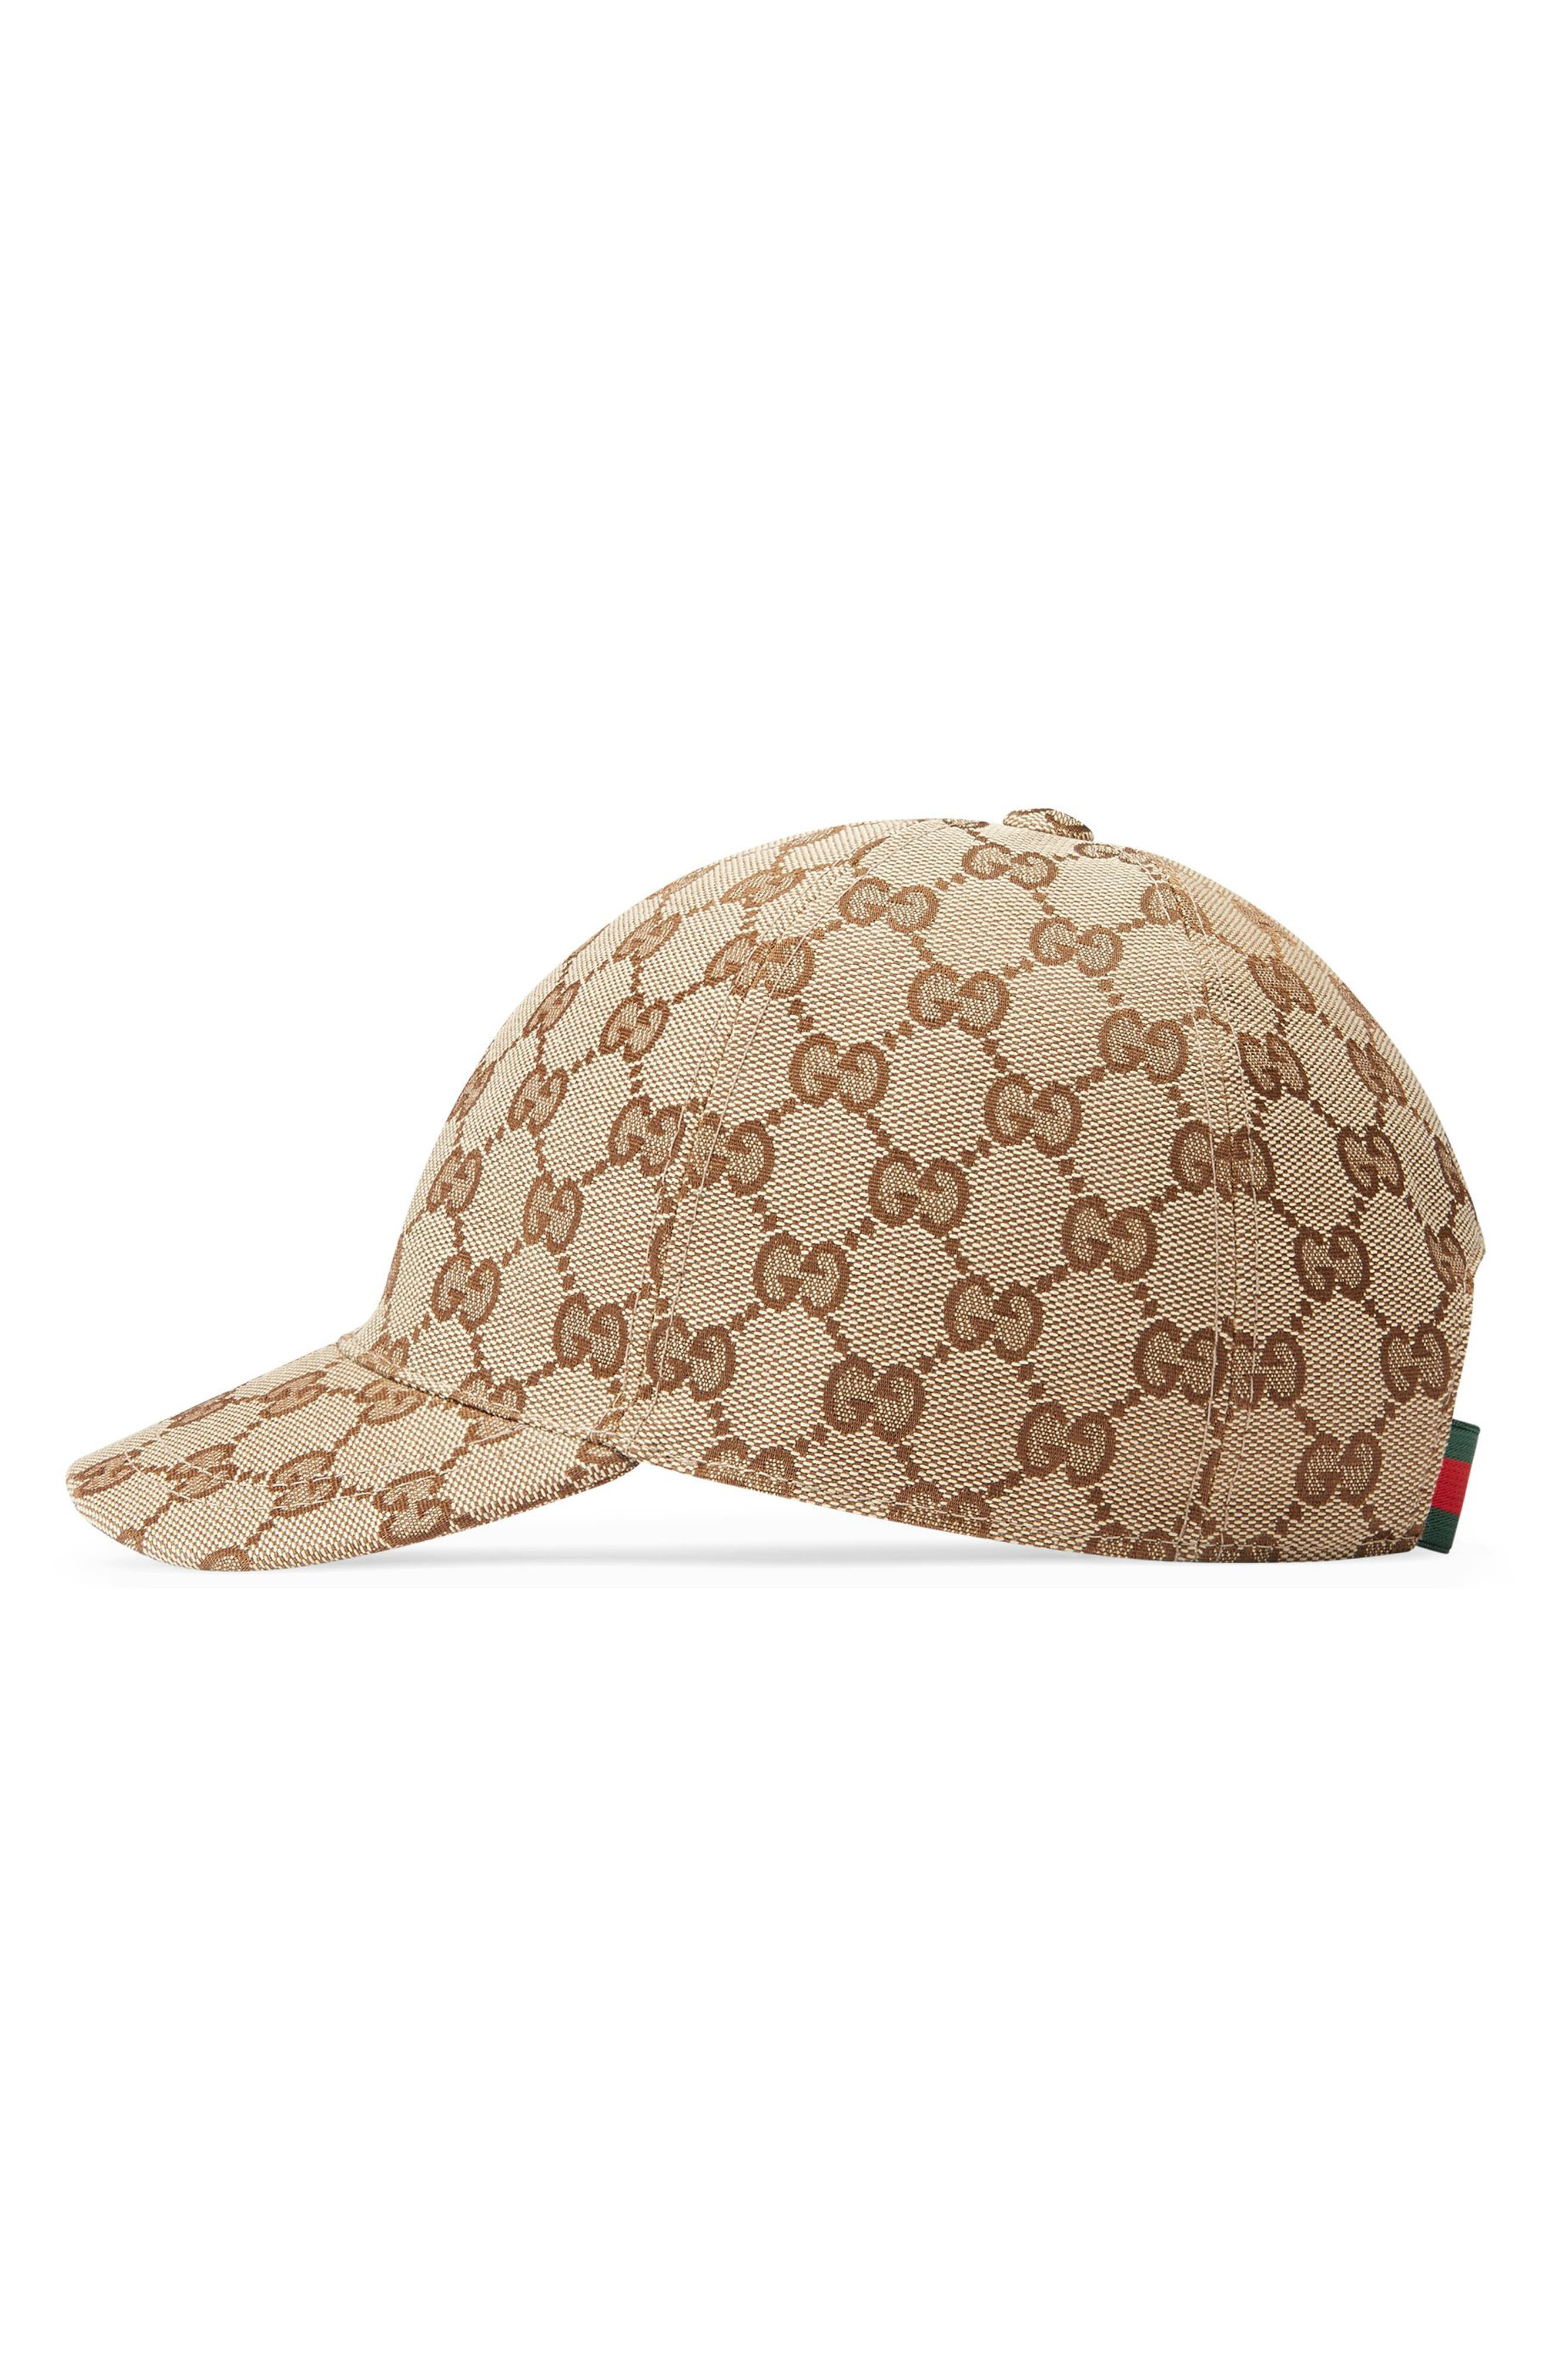 GUCCI, Logo Baseball Cap, Alternate thumbnail 2, color, 213